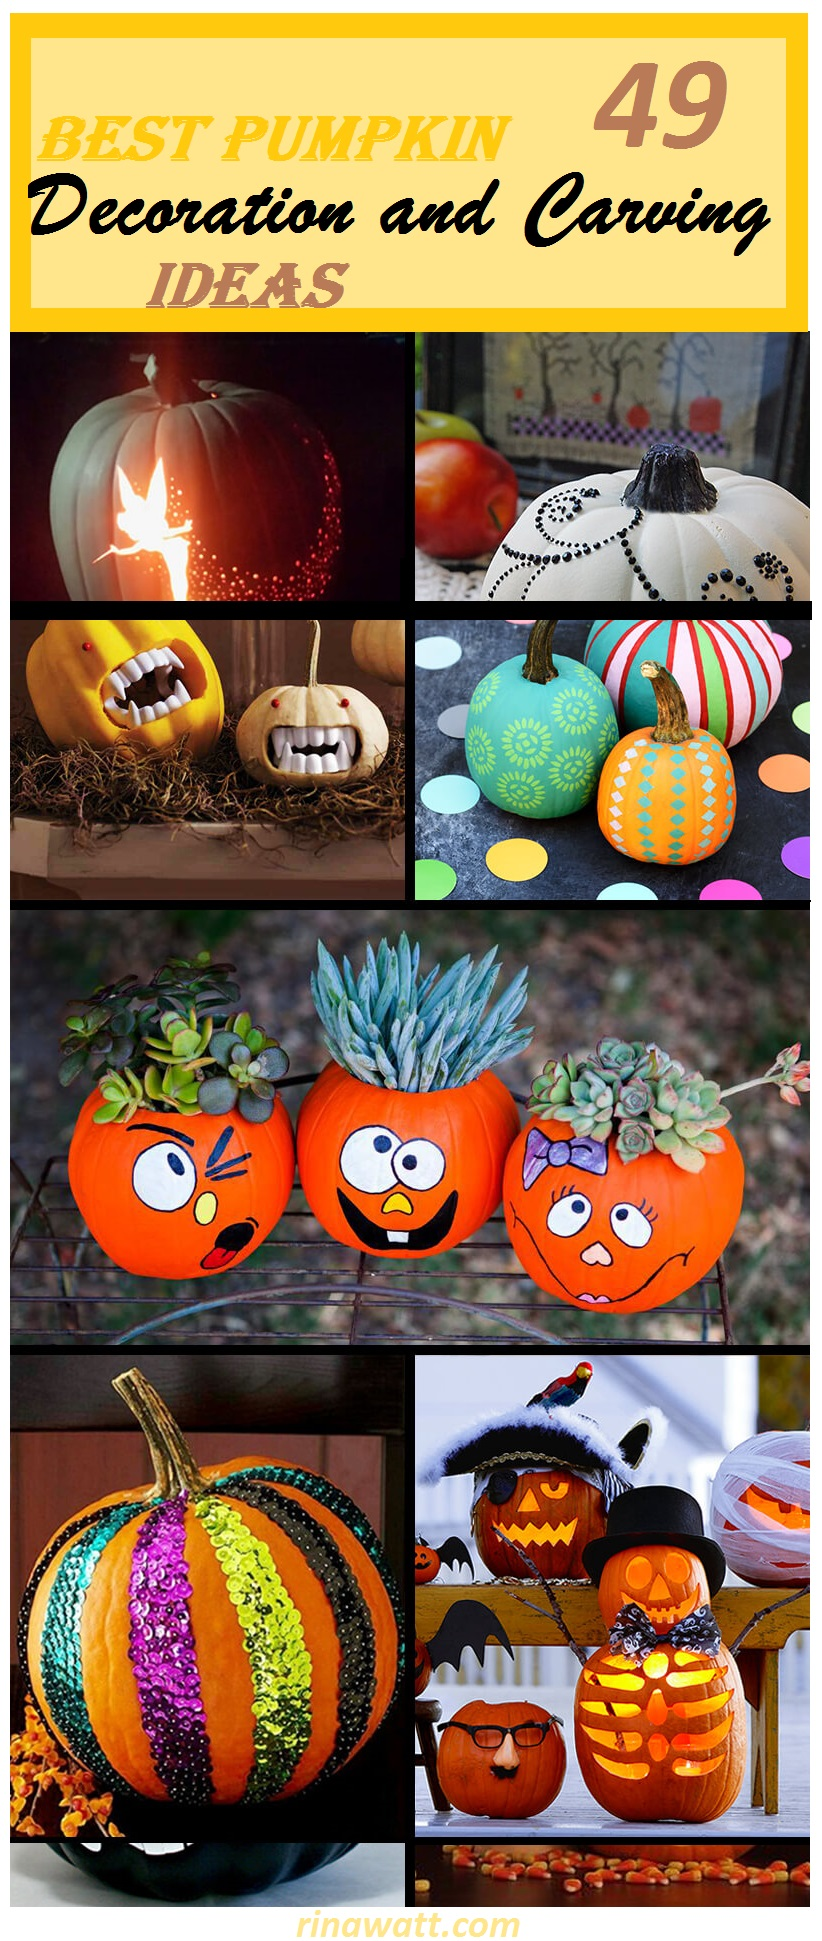 The 49 Best Pumpkin Decoration And Carving Ideas For